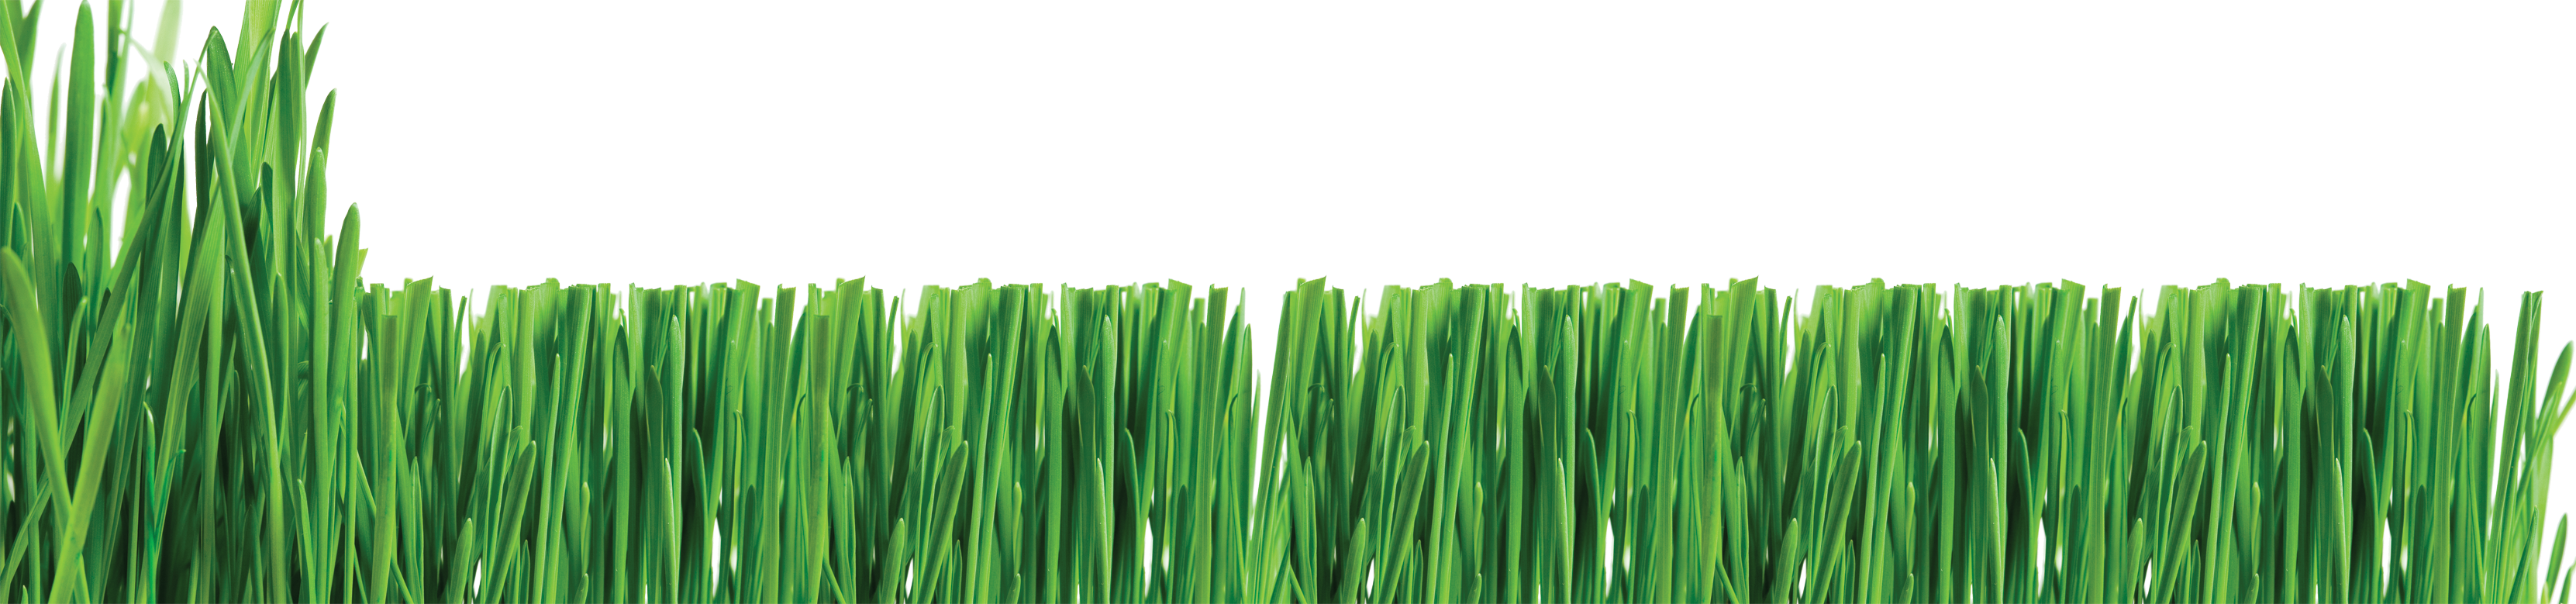 banner  collection of services. Lawn care clipart high grass.